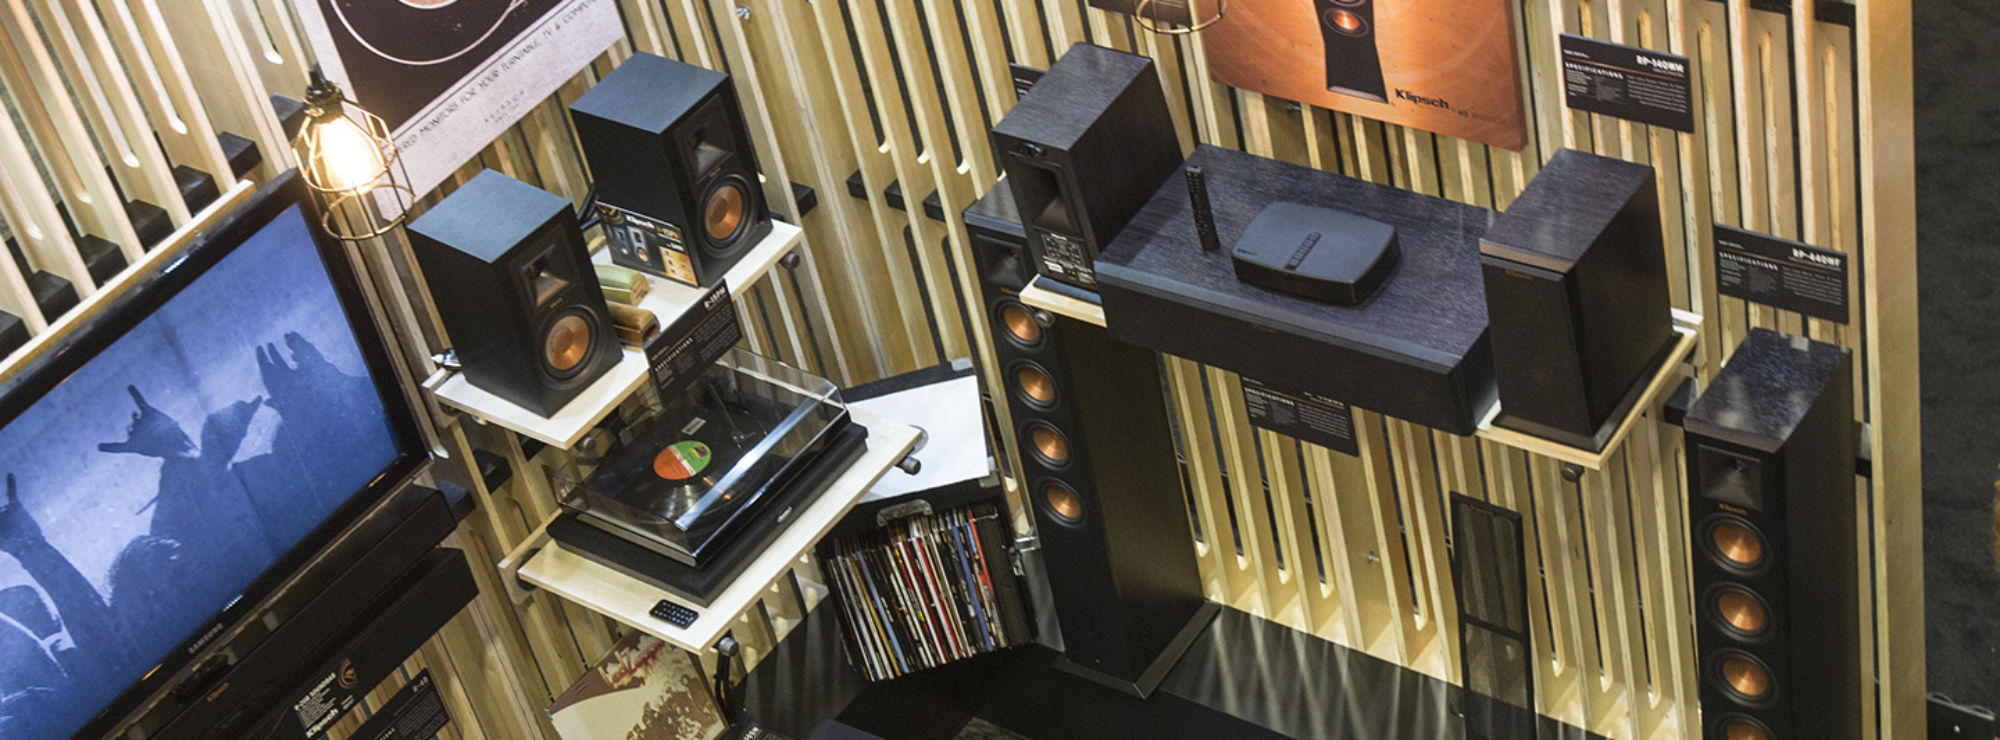 Turntable Pack and Reference Premiere HD Wireless System displayed at convention